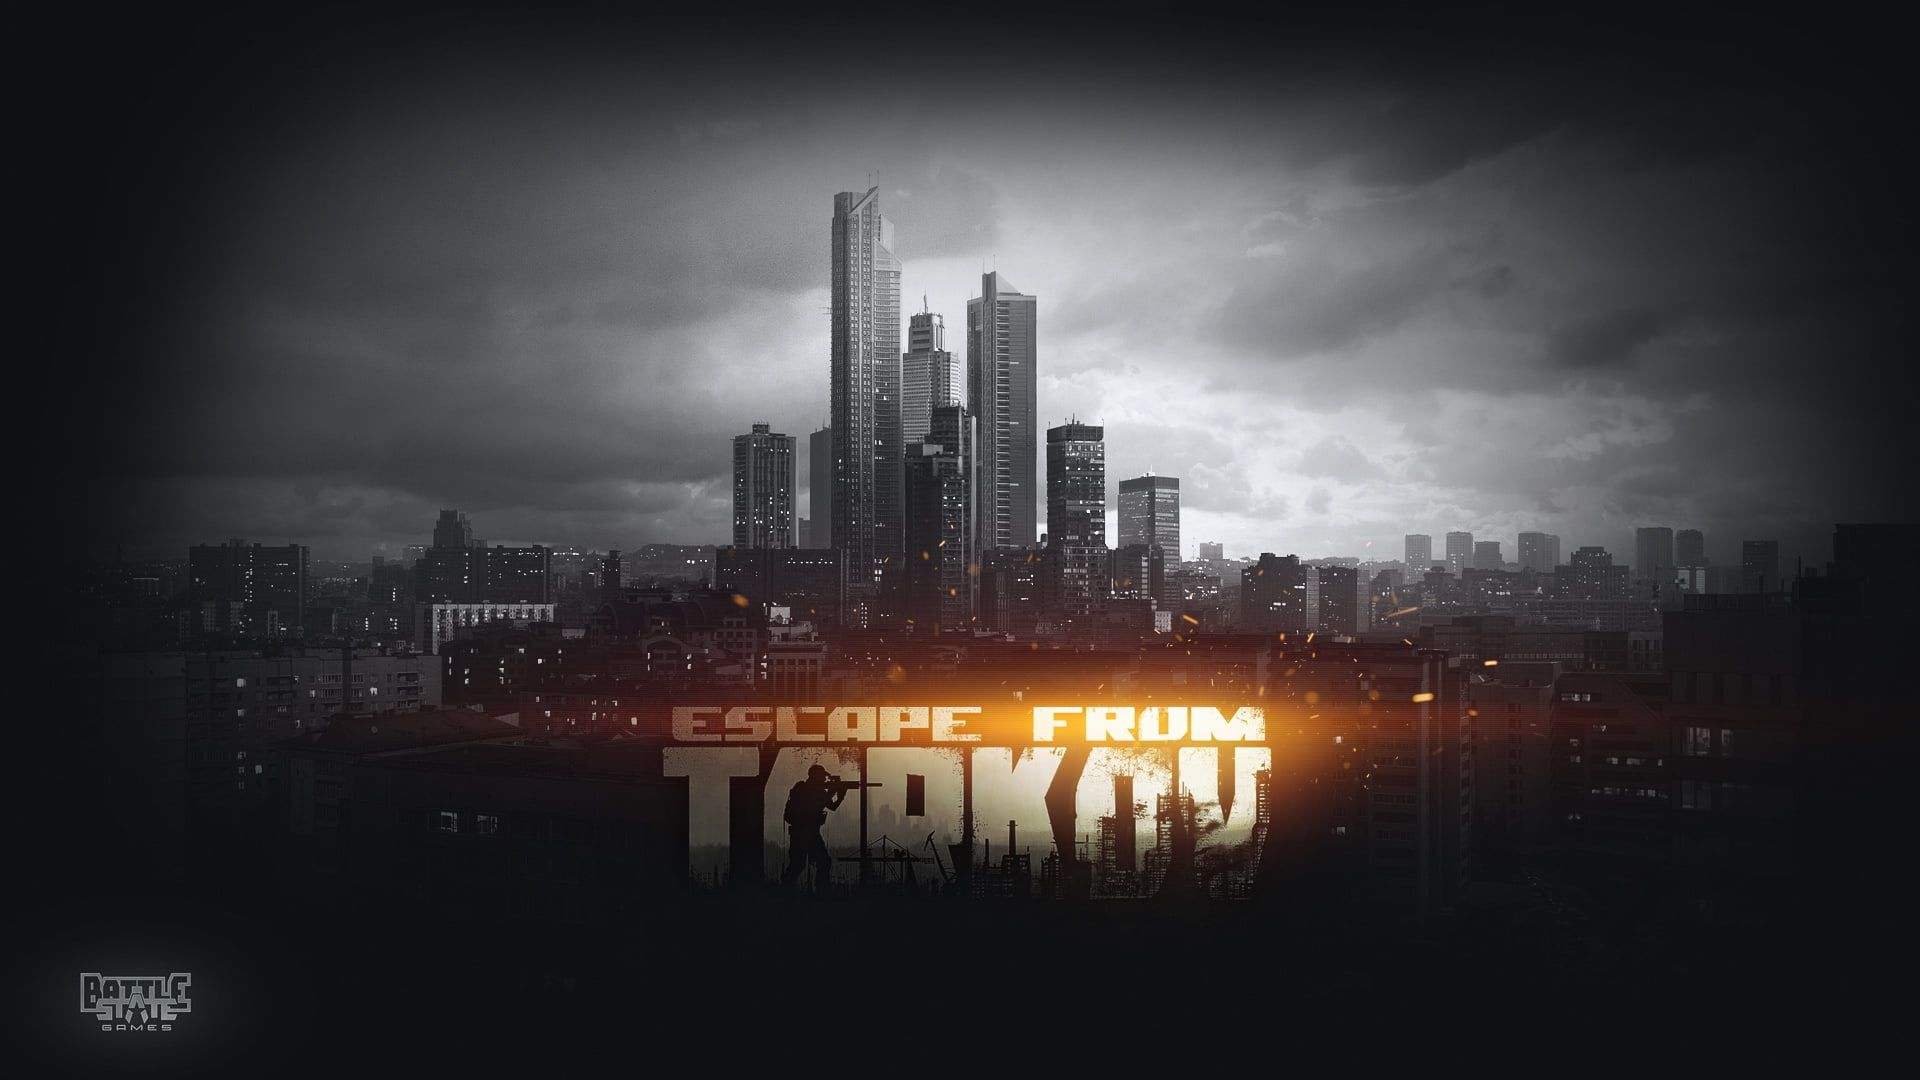 The City Battlestate Games Escape From Tarkov Eft Russia 2028 Tarkov 1080p Wallpaper Hdwa In 2020 Background Images For Editing Movie Posters Background Images Hd